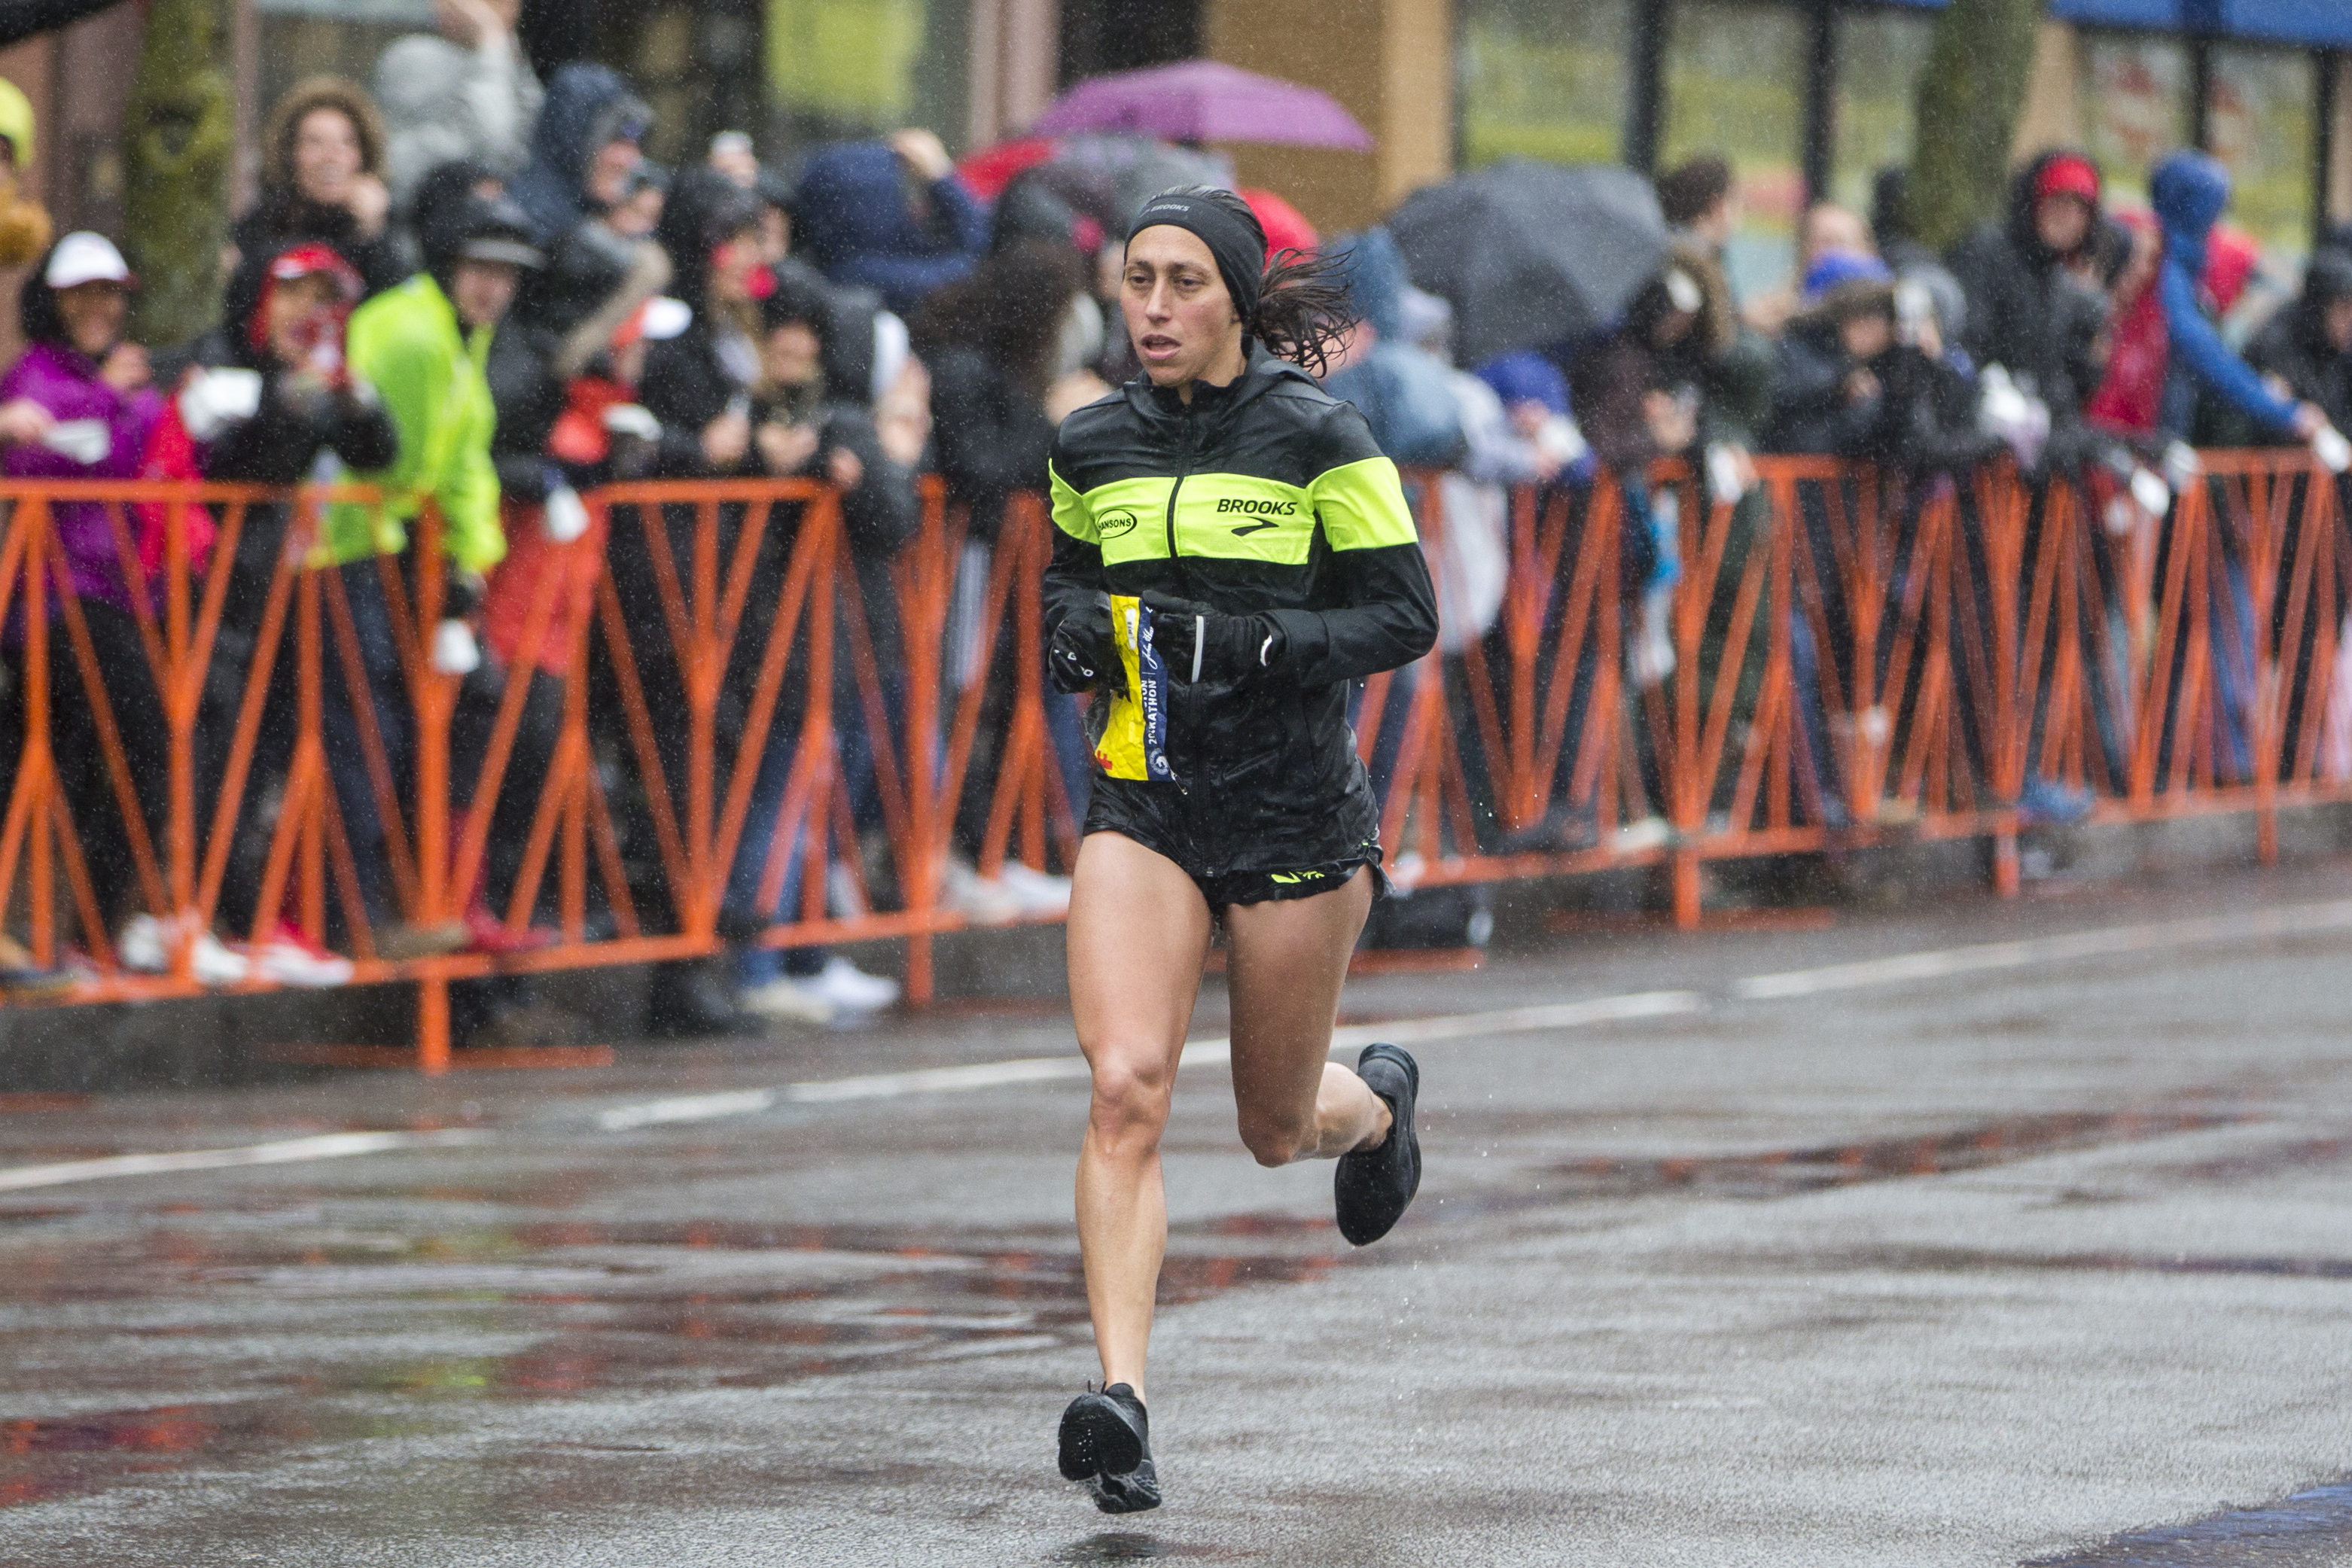 Desiree Linden approaches the 24 mile marker of the 2018 Boston Marathon on April 16, 2018 in Brookline, Massachusetts. Linden became the first American winner since 1985 with an unofficial time of 2:39:54.